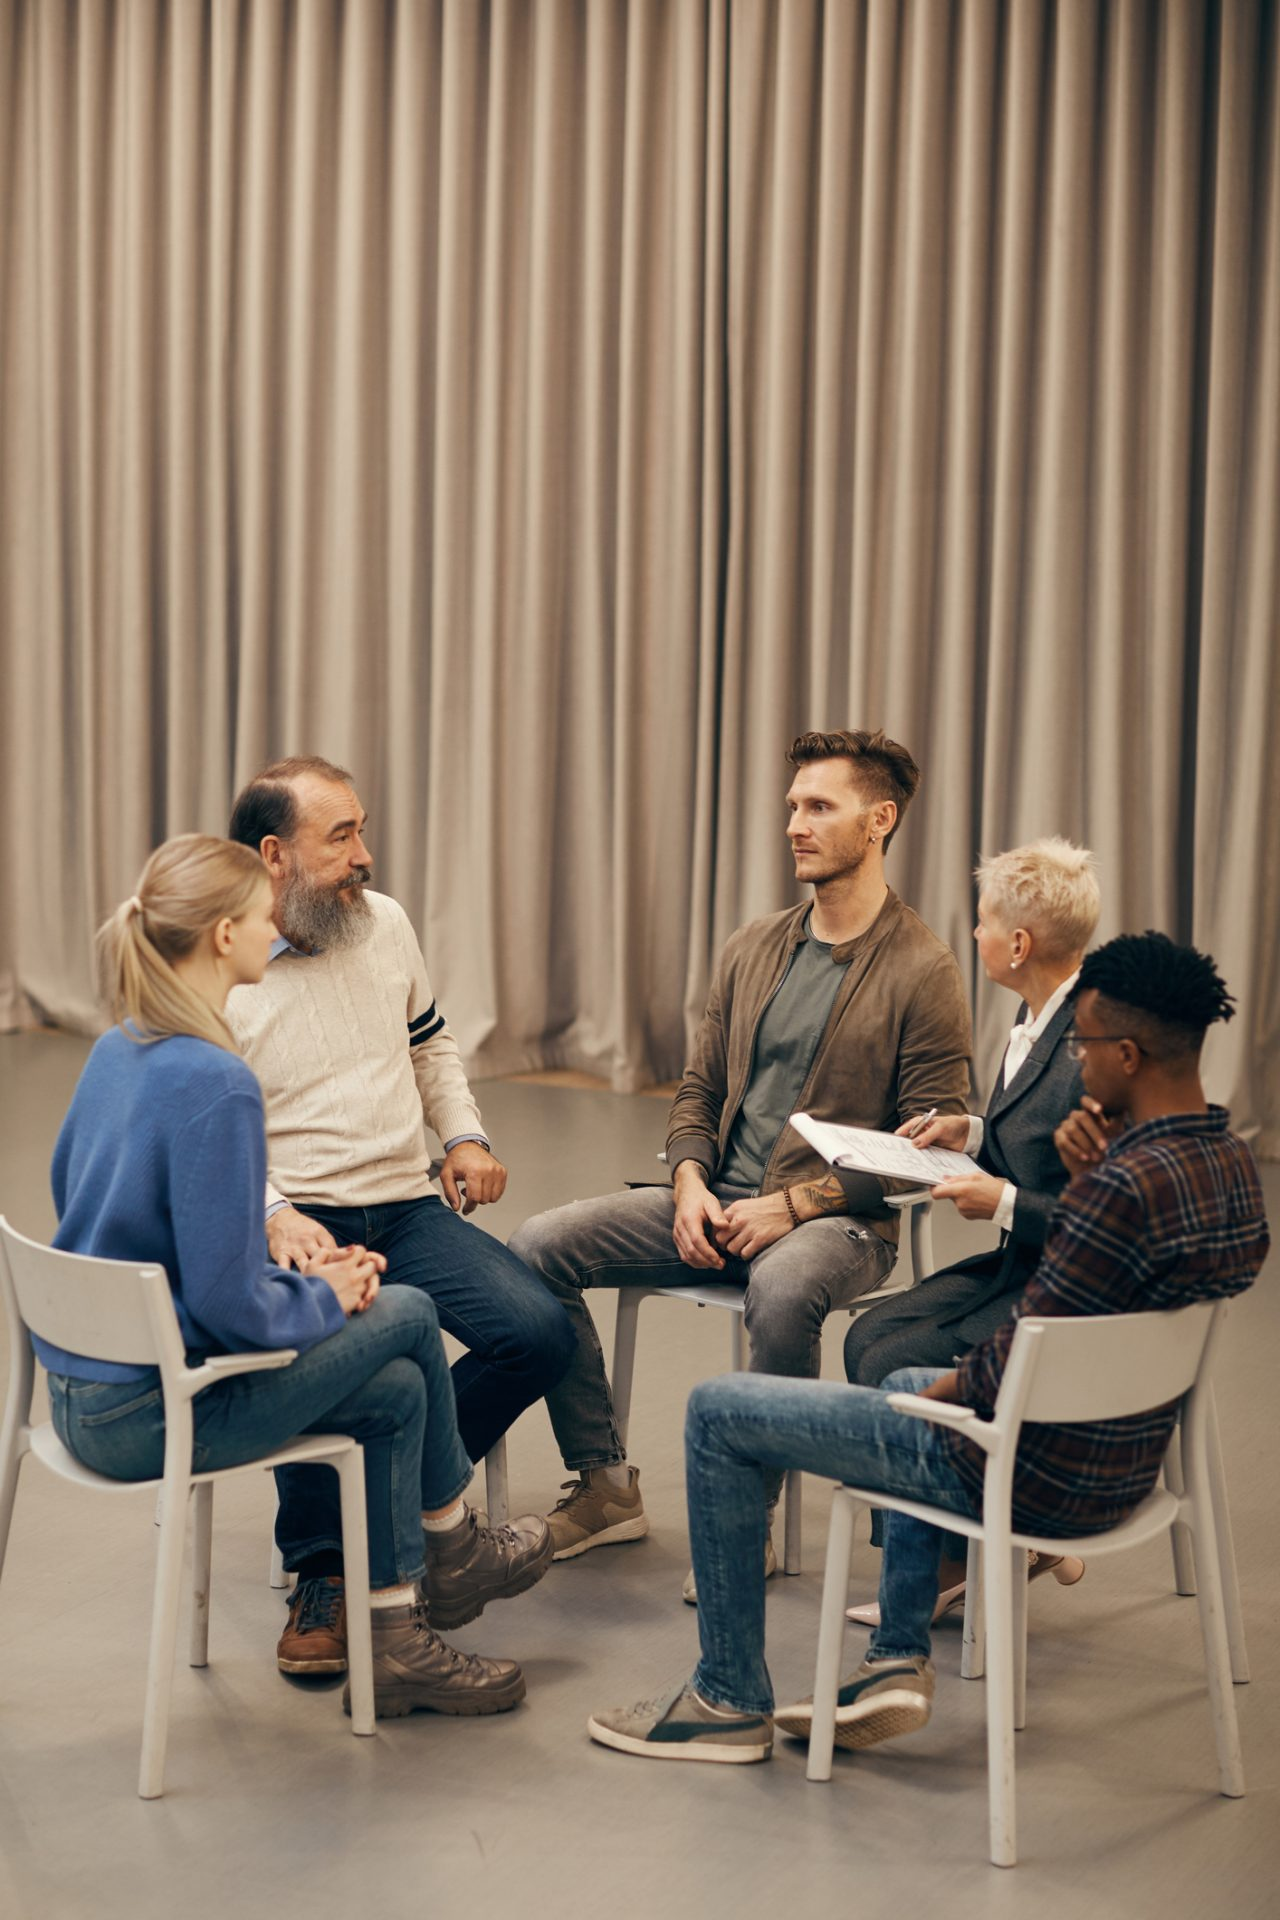 group of people in circle talking